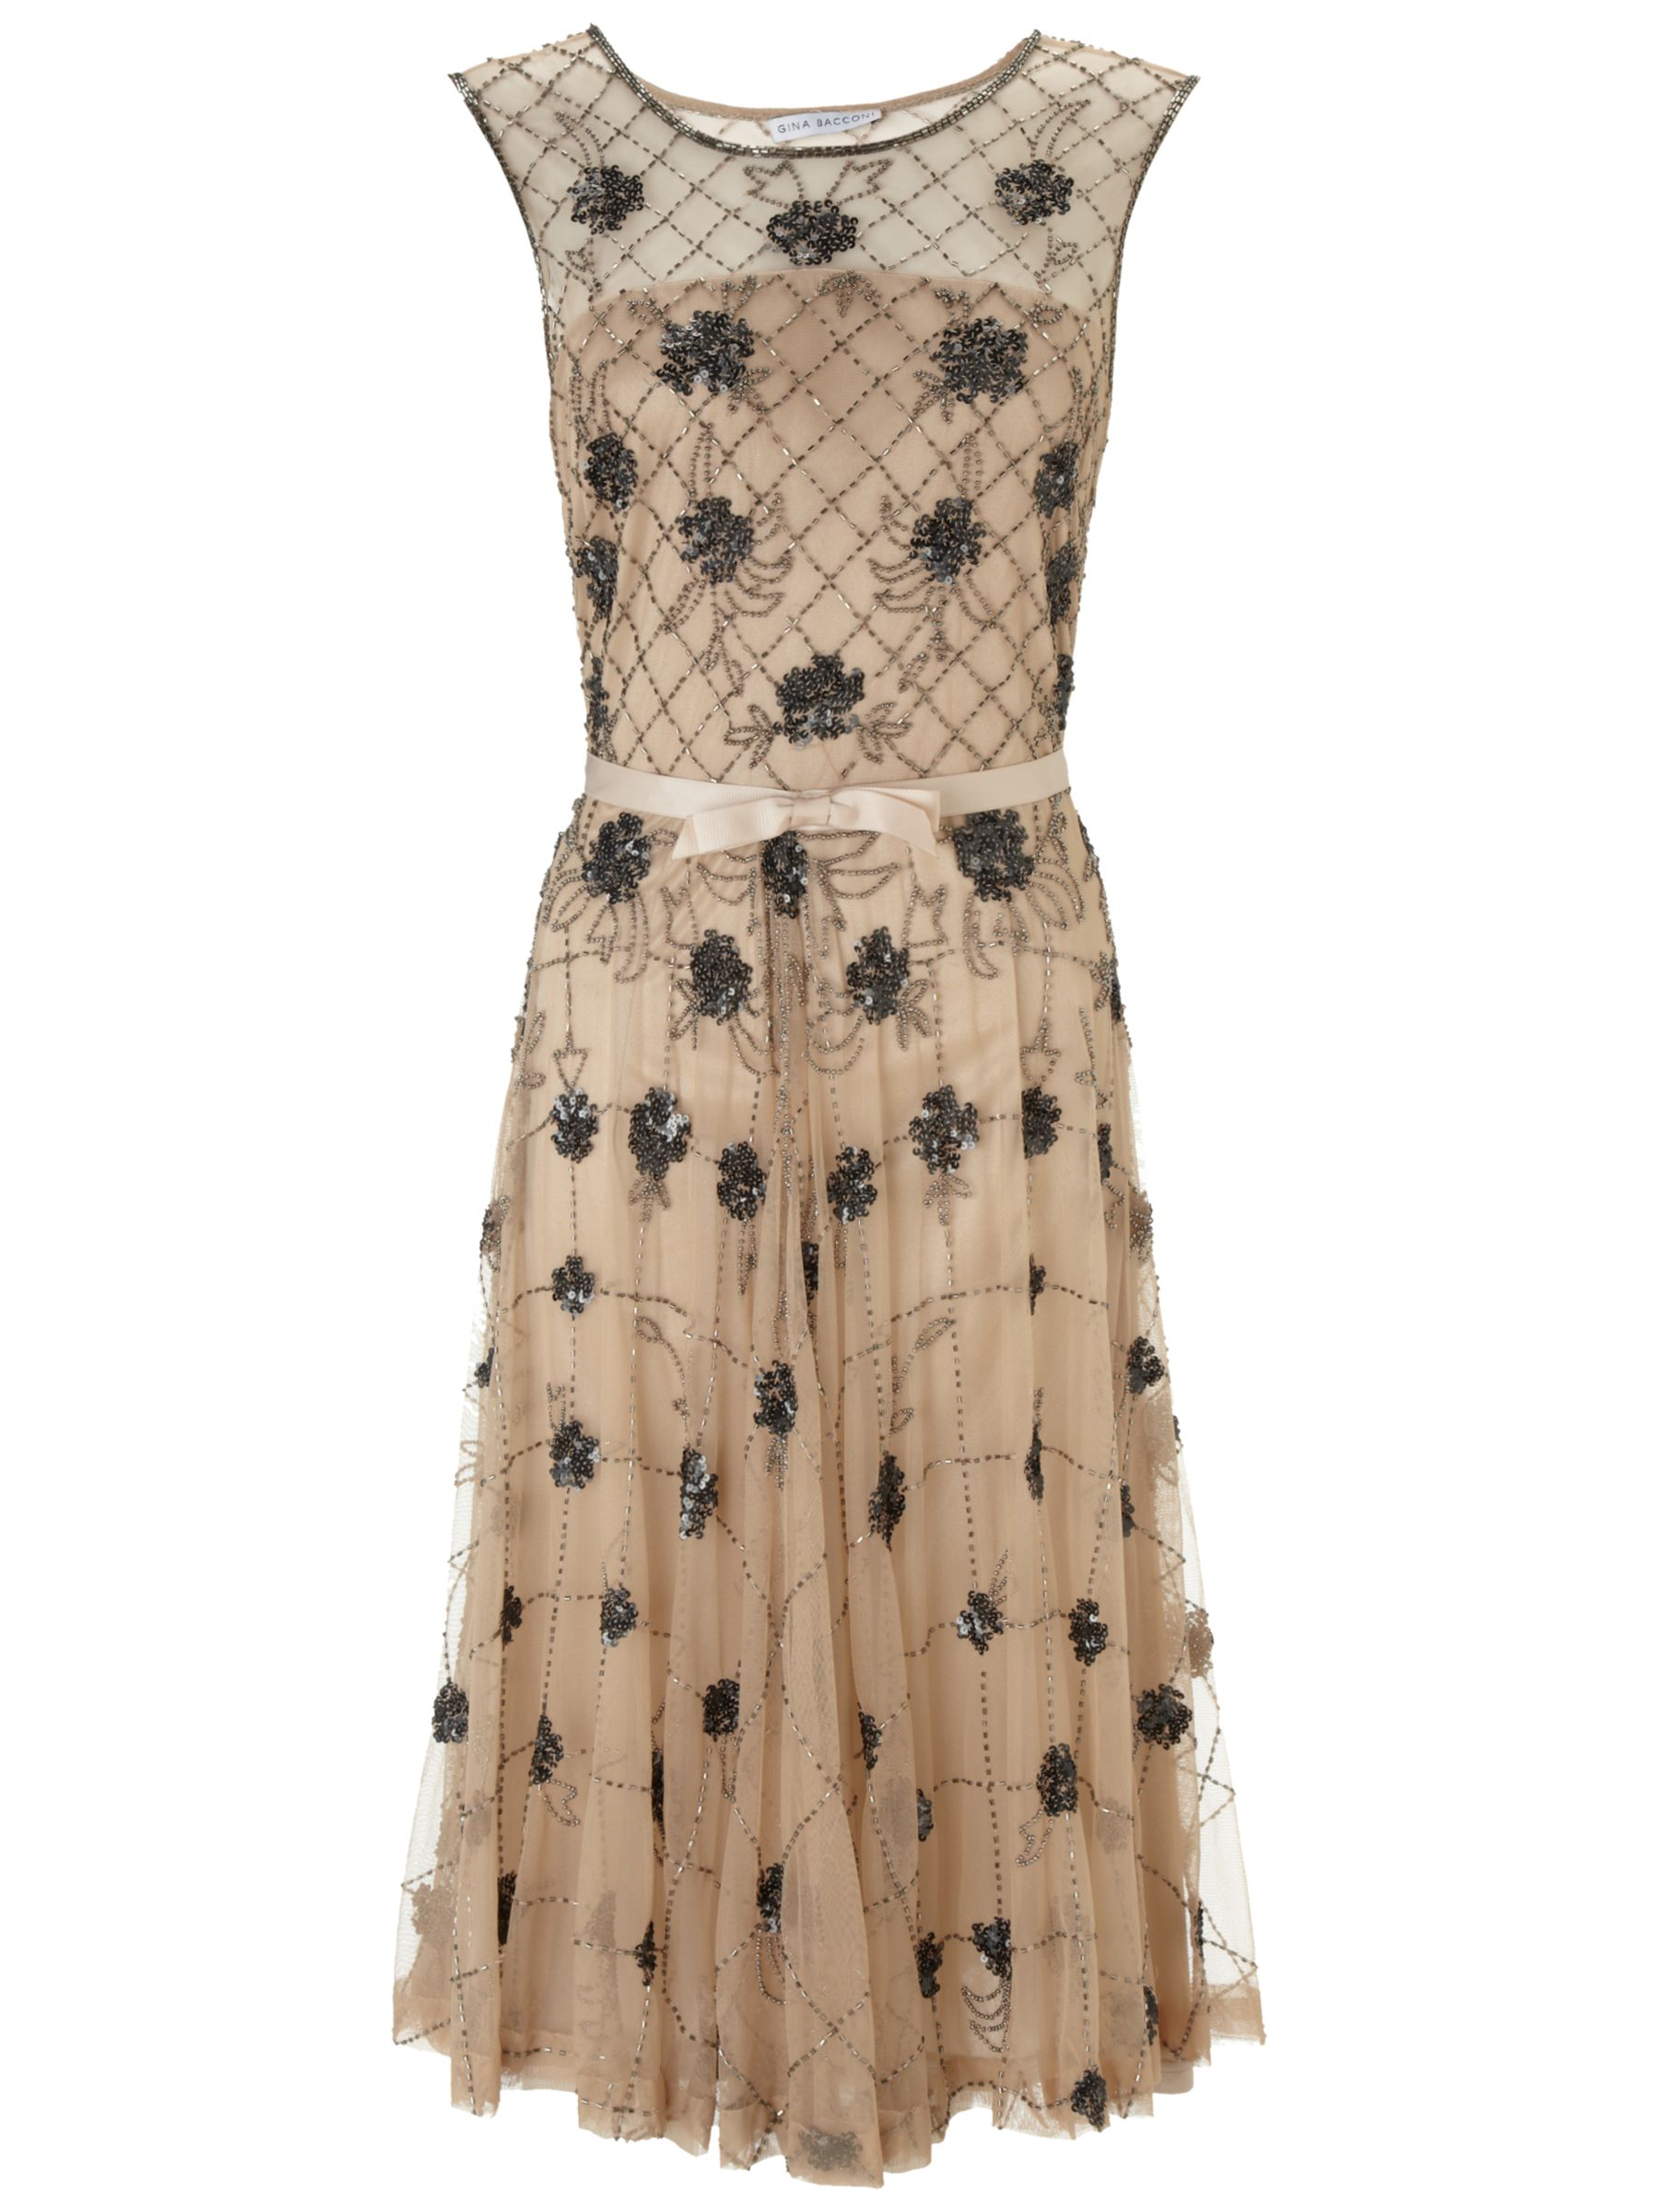 1920s Dresses for Sale in the UK photo picture